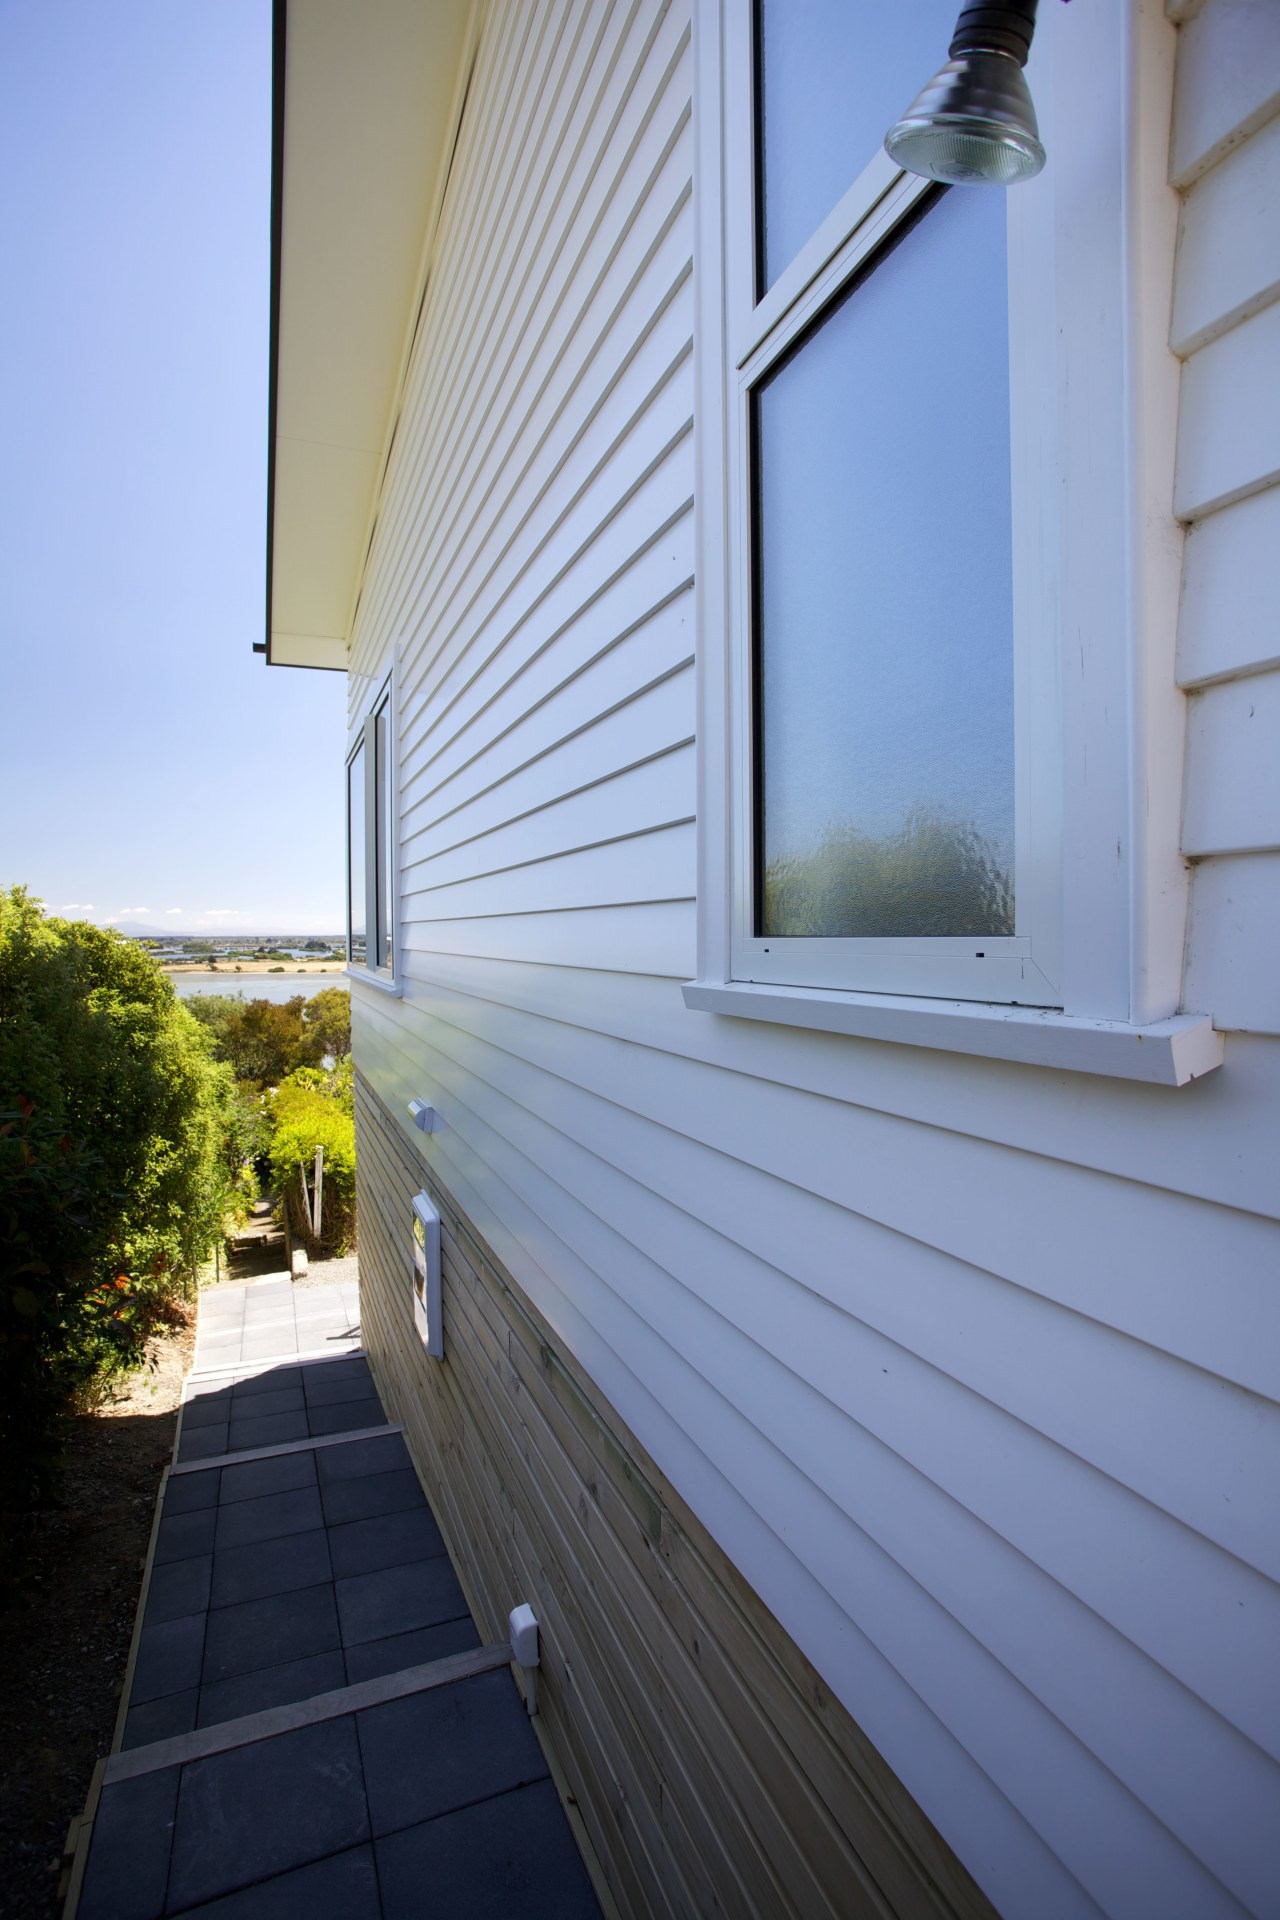 Palliside is a low-maintenance cladding solution that never architecture, building, daylighting, facade, home, house, real estate, residential area, roof, siding, sky, window, wood, teal